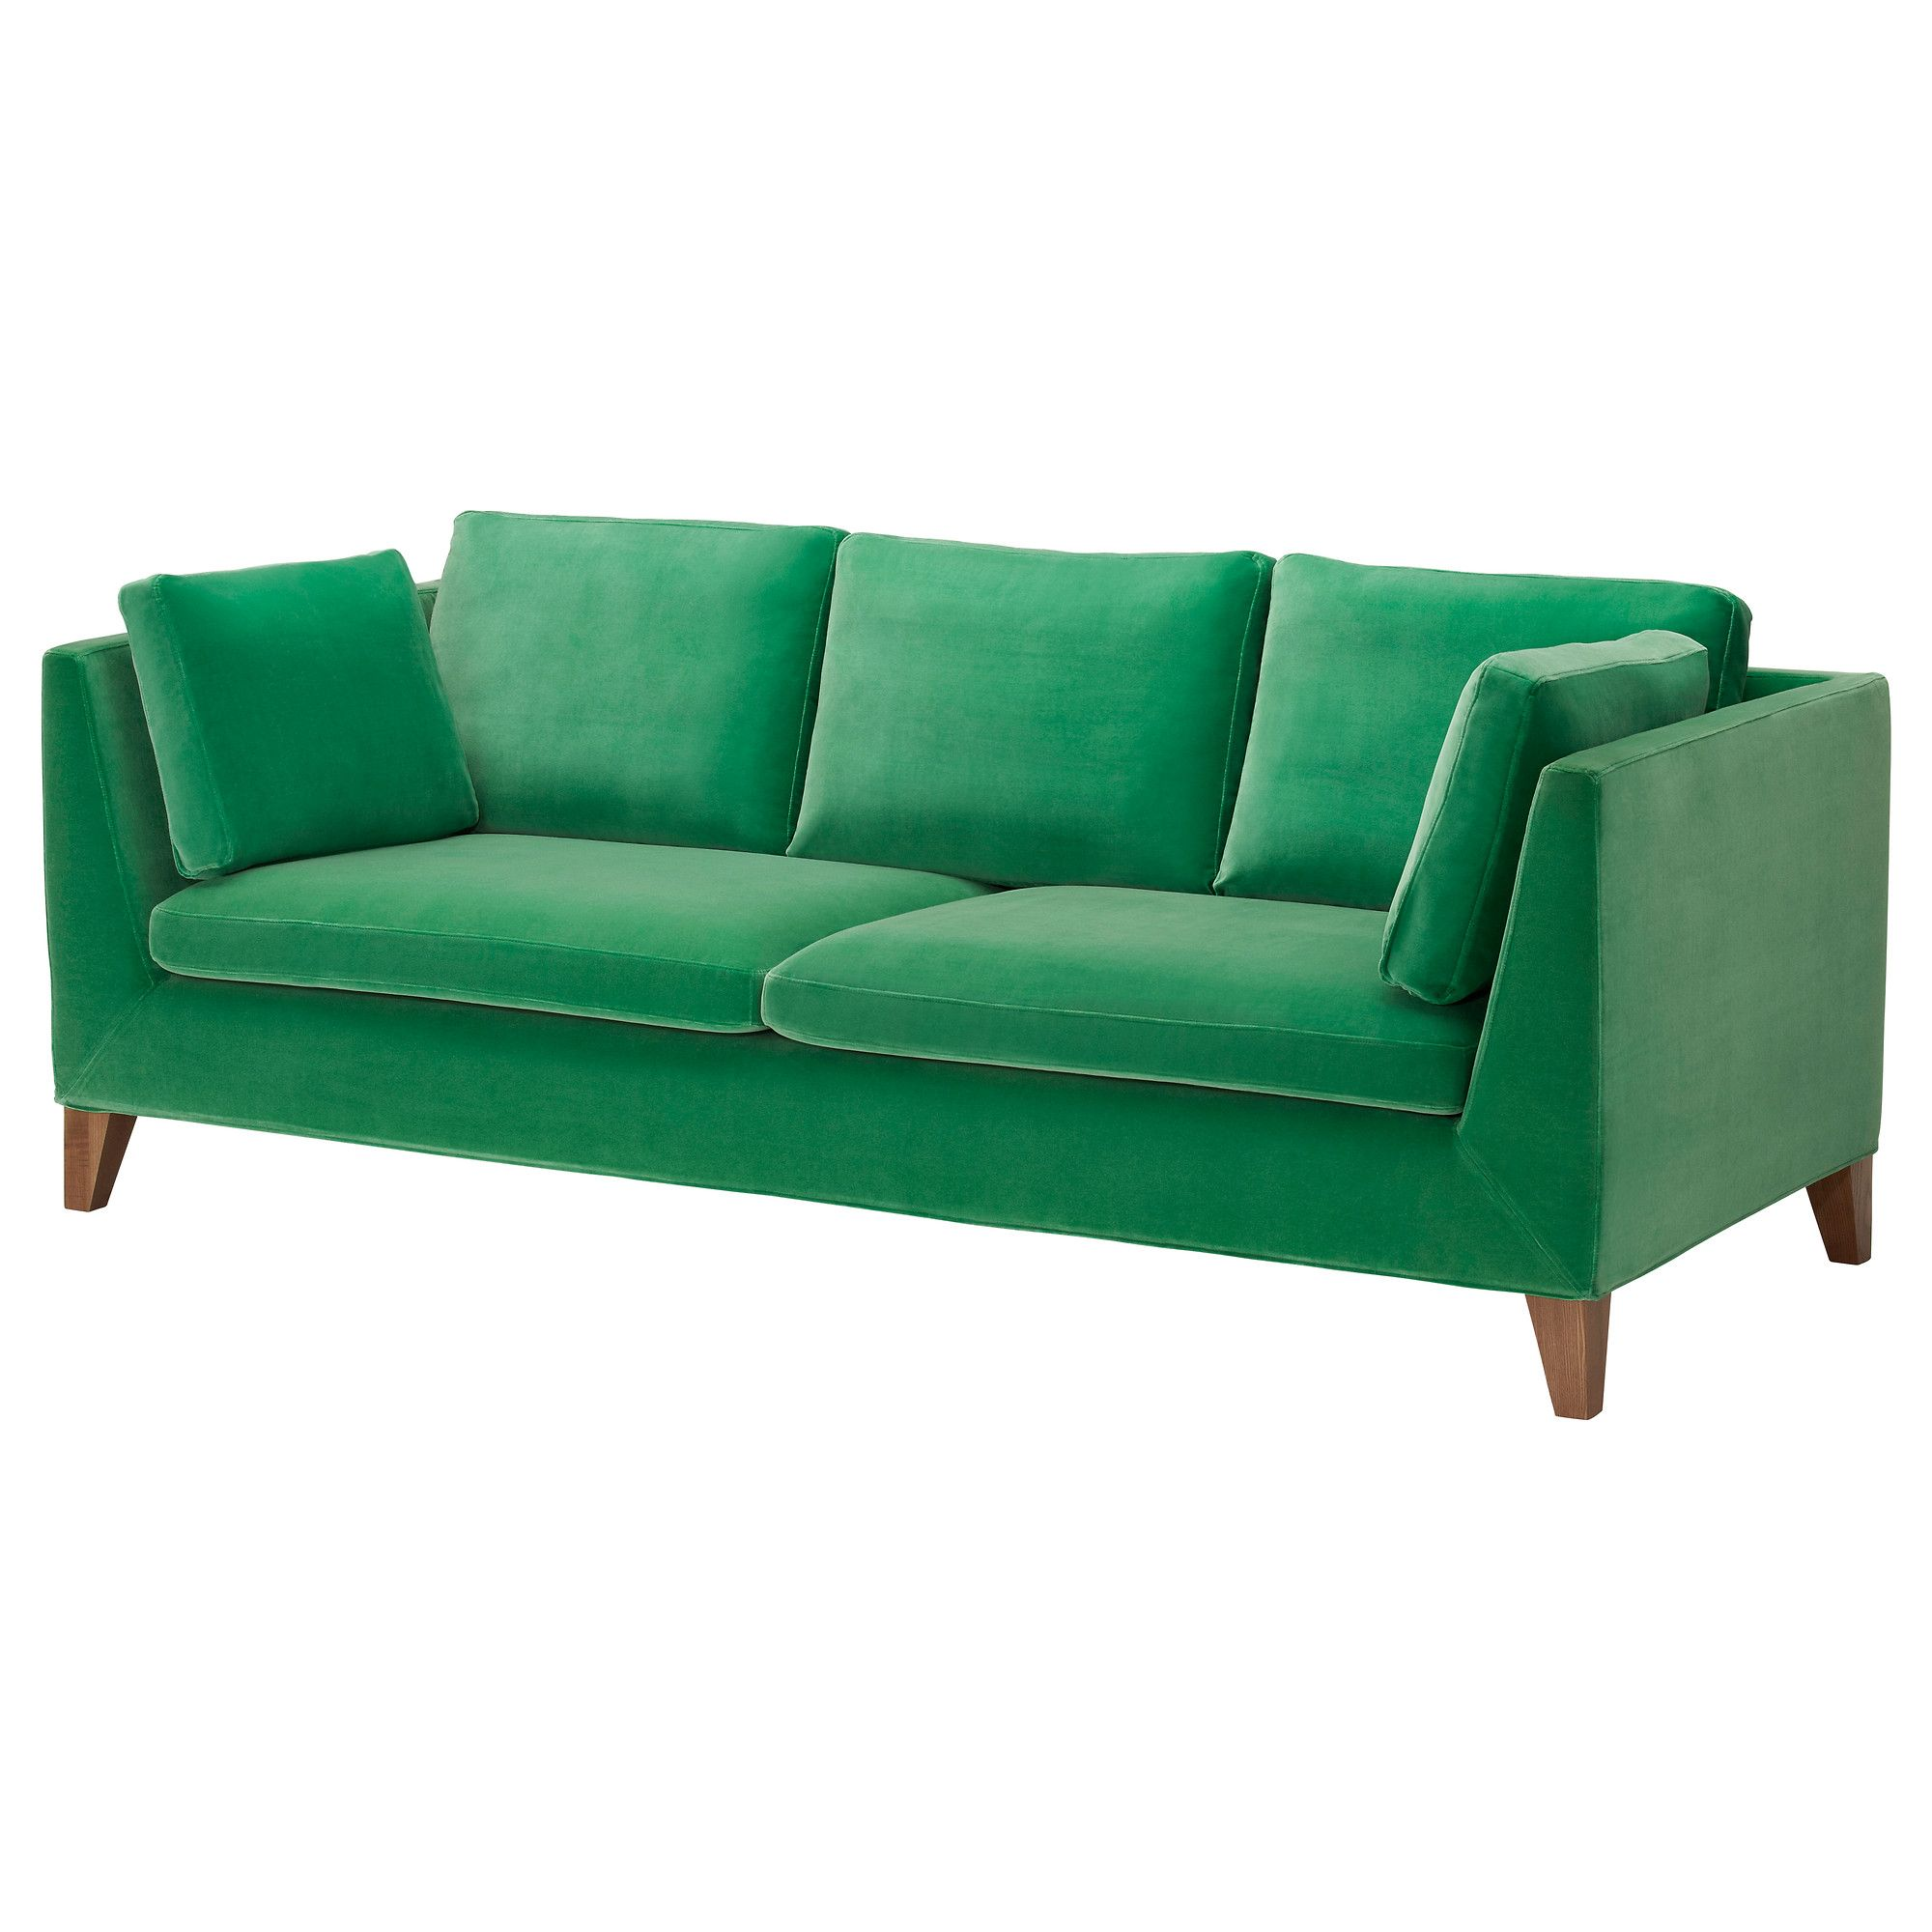 Snowdrop sofa in Olive cotton velvet i will wish for this couch